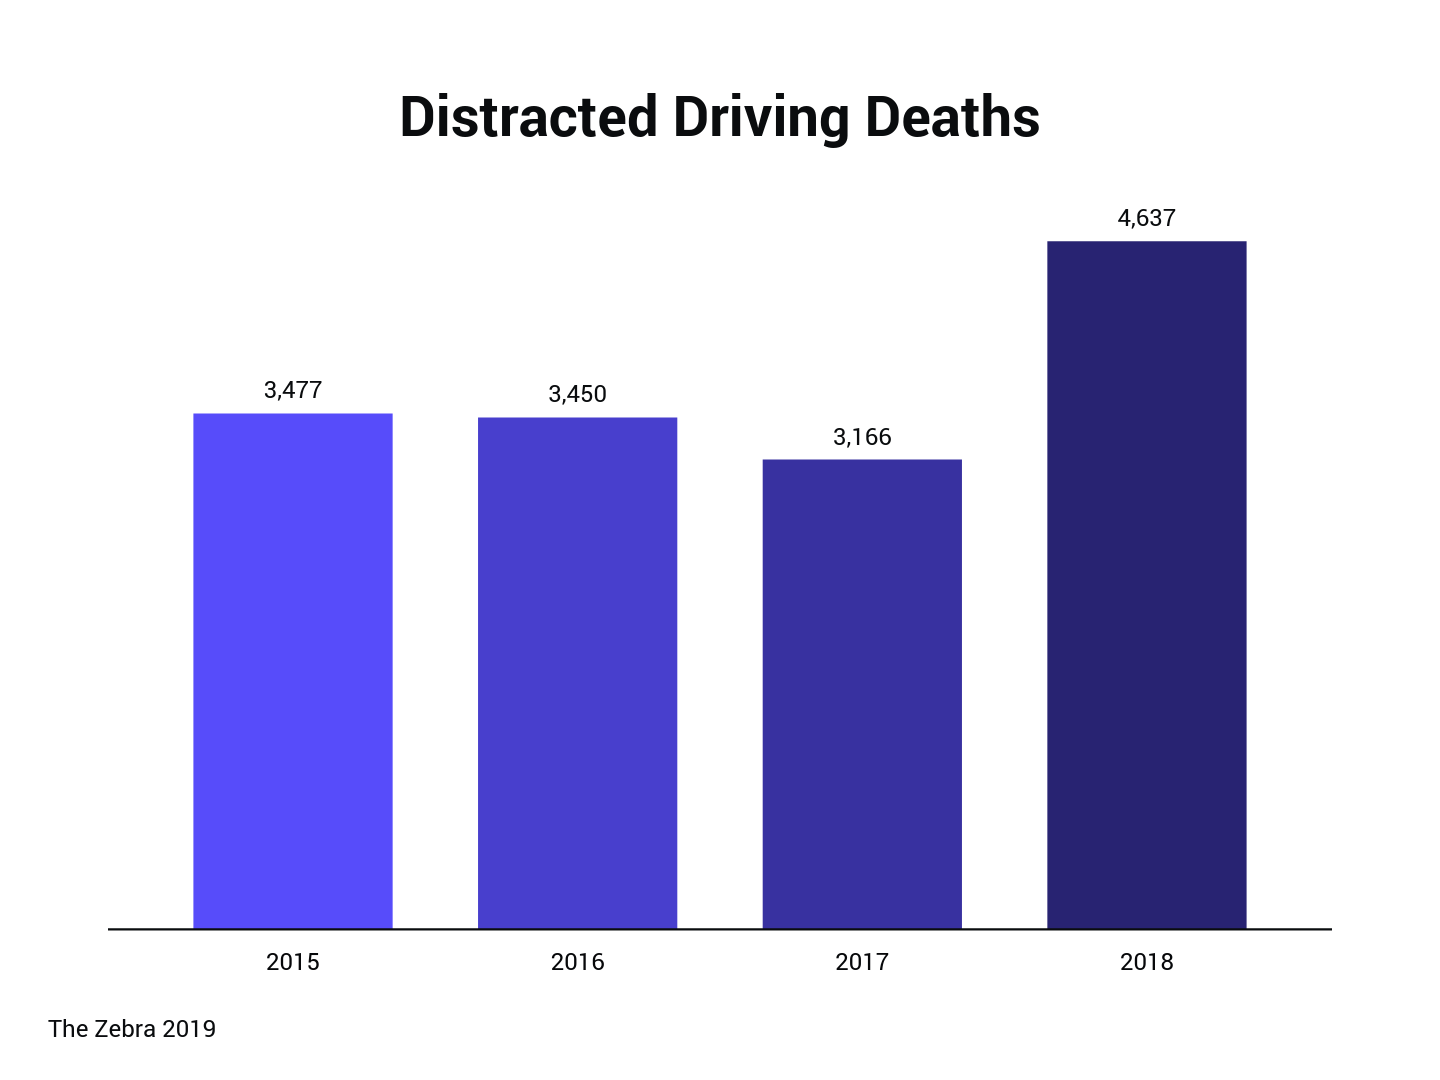 bar graph displaying distracted driving deaths by year